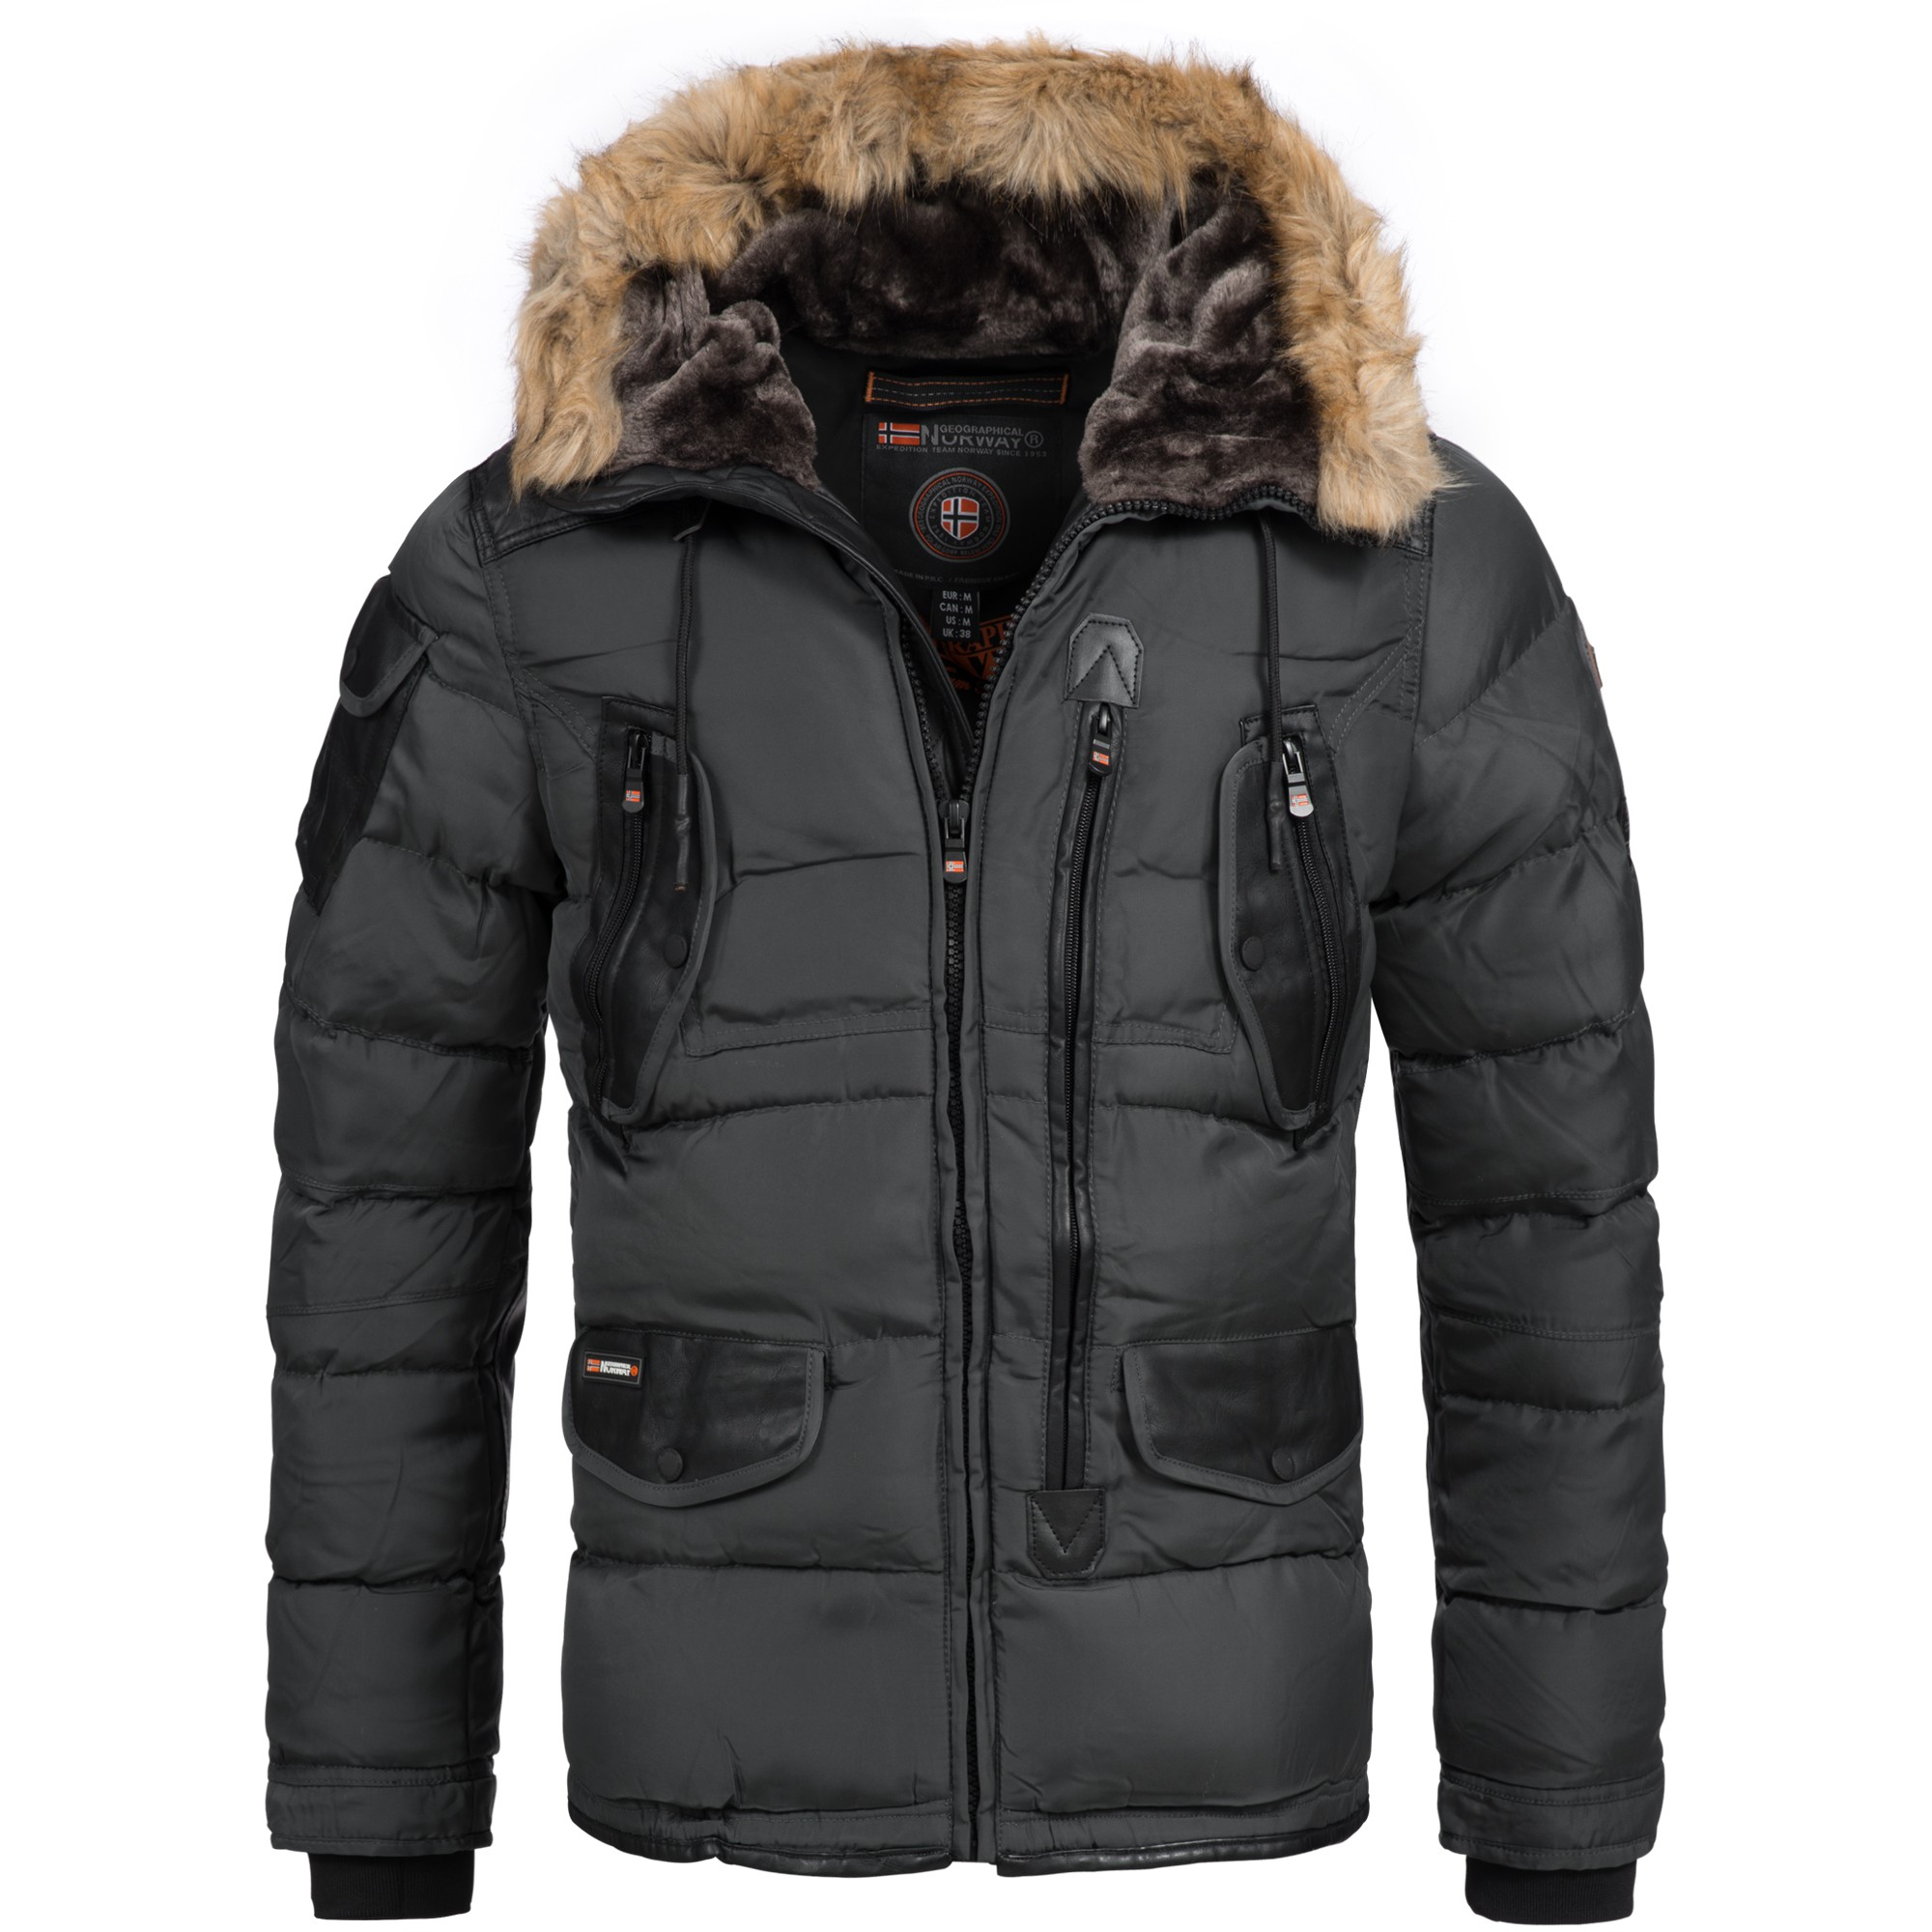 geographical norway buckleberry herren luxus winterjacke parka ski warm s xxxl ebay. Black Bedroom Furniture Sets. Home Design Ideas